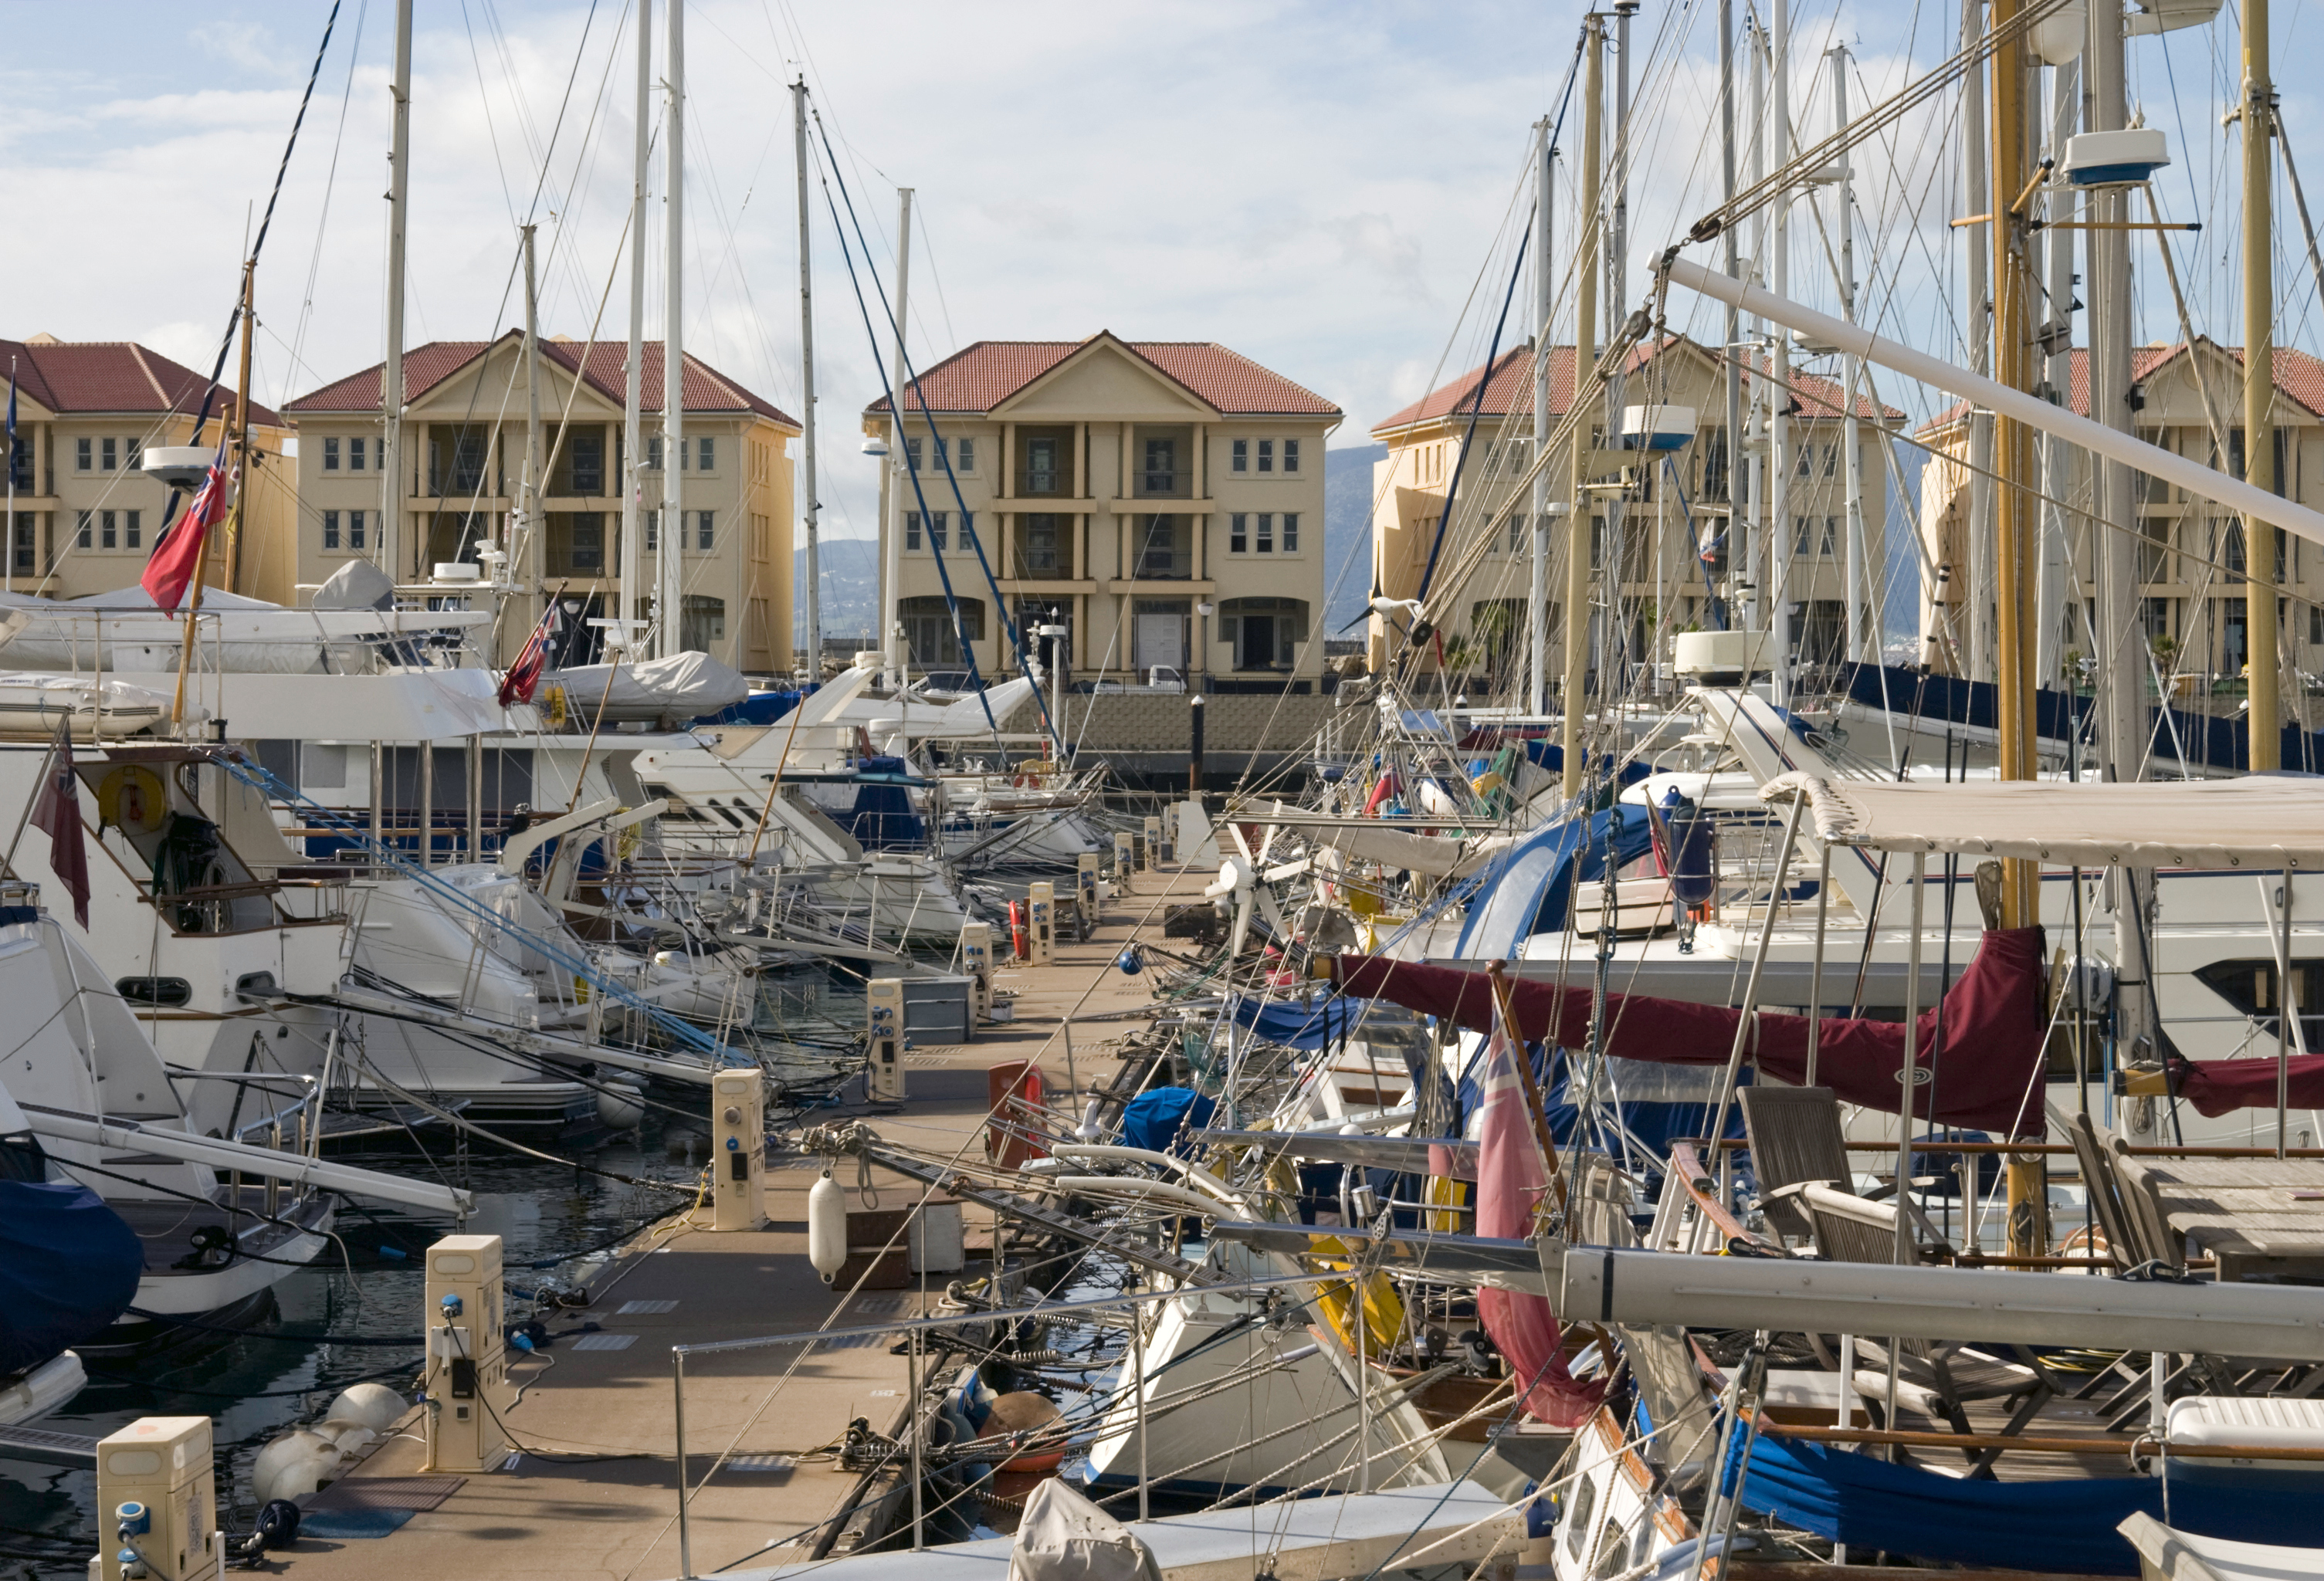 Boats in the Queensway Marina, Gibraltar